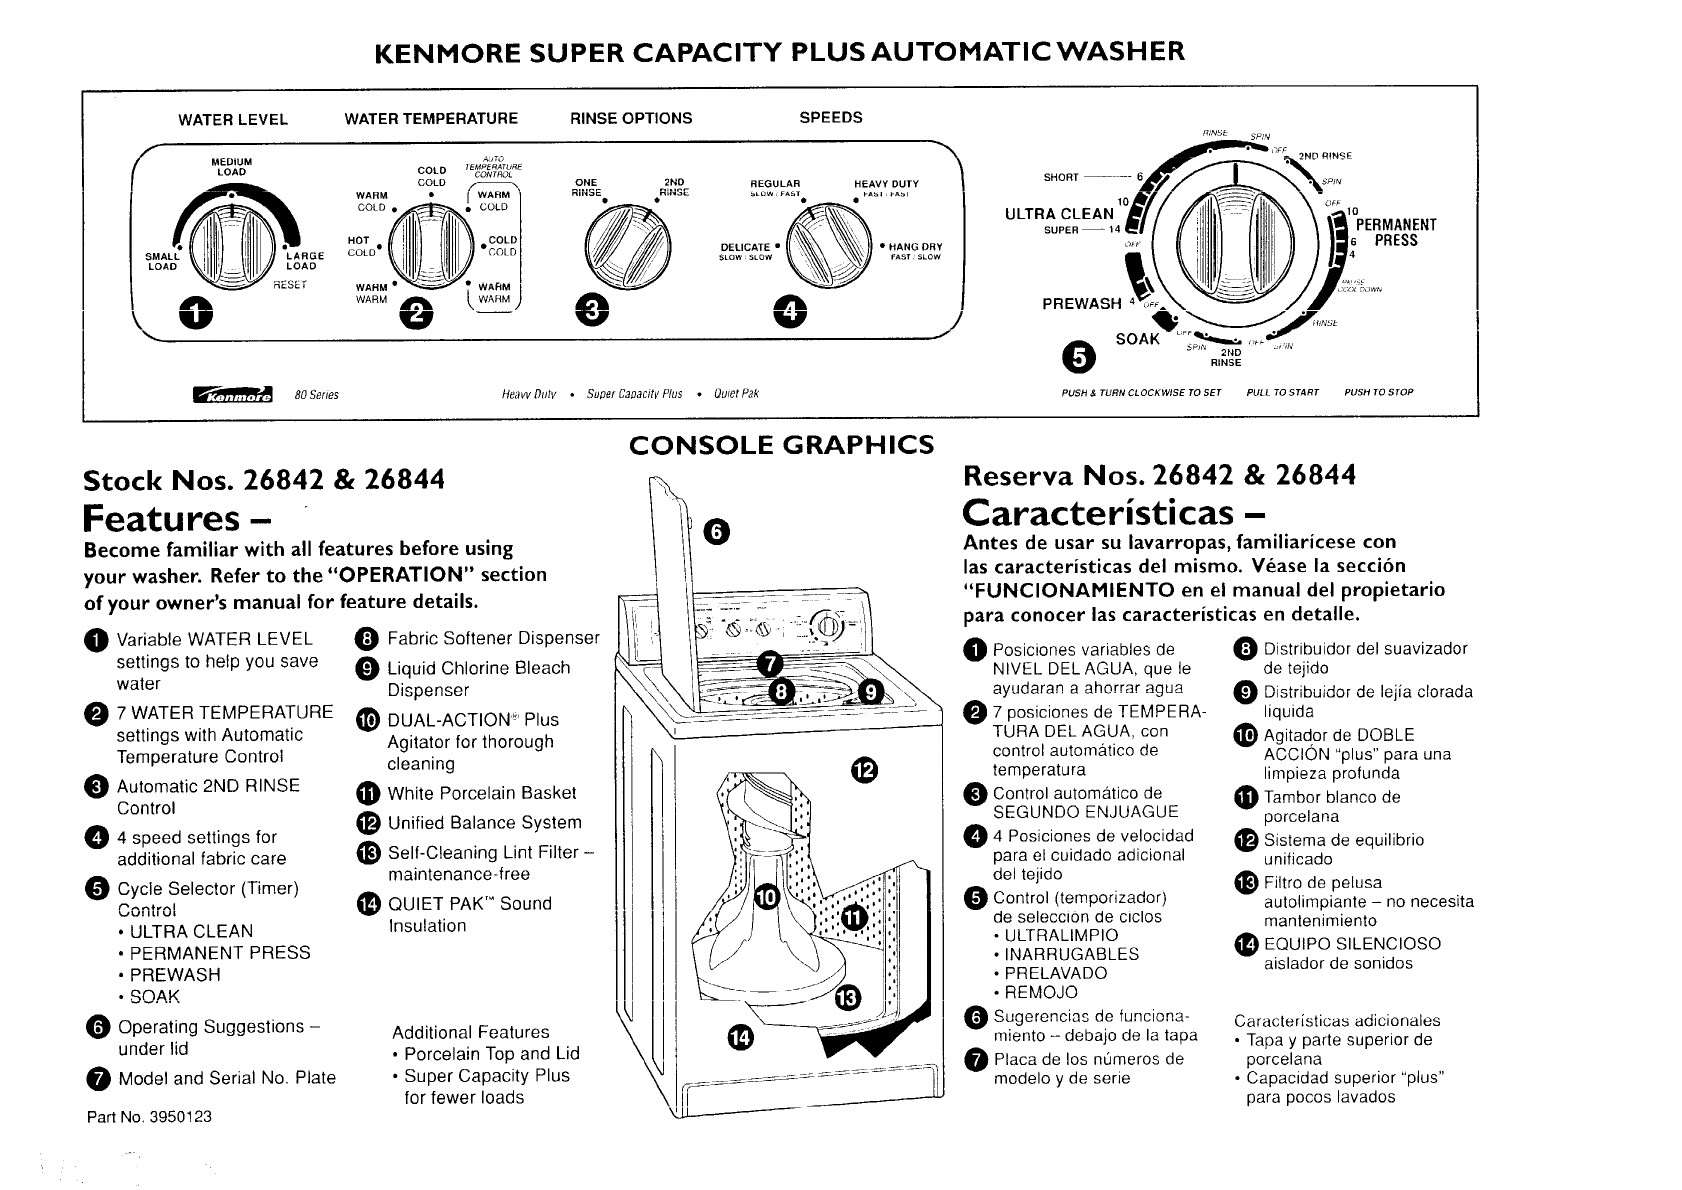 kenmore washer wiring diagram diagram collections wiring diagram with kenmore 80 series dryer parts diagram 80 series wiring diagram power wiring diagram \u2022 free wiring sears kenmore washer model 110 wiring diagram at crackthecode.co